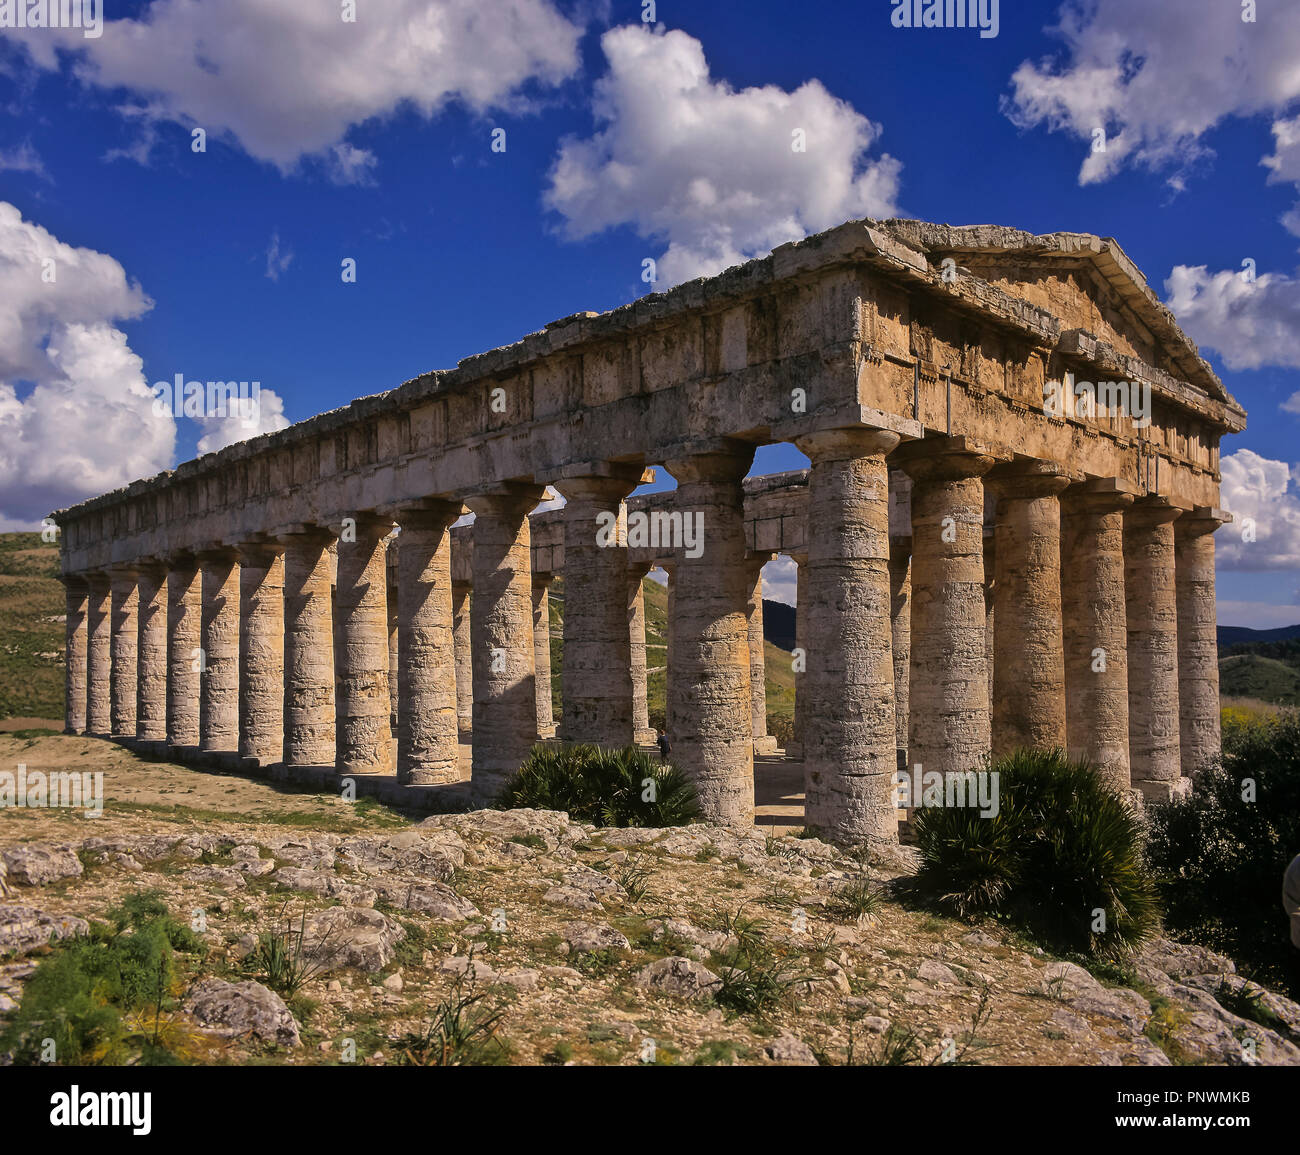 Greek temple of Segesta - 5th century BC. Sicily. Italy. Europe - Stock Image